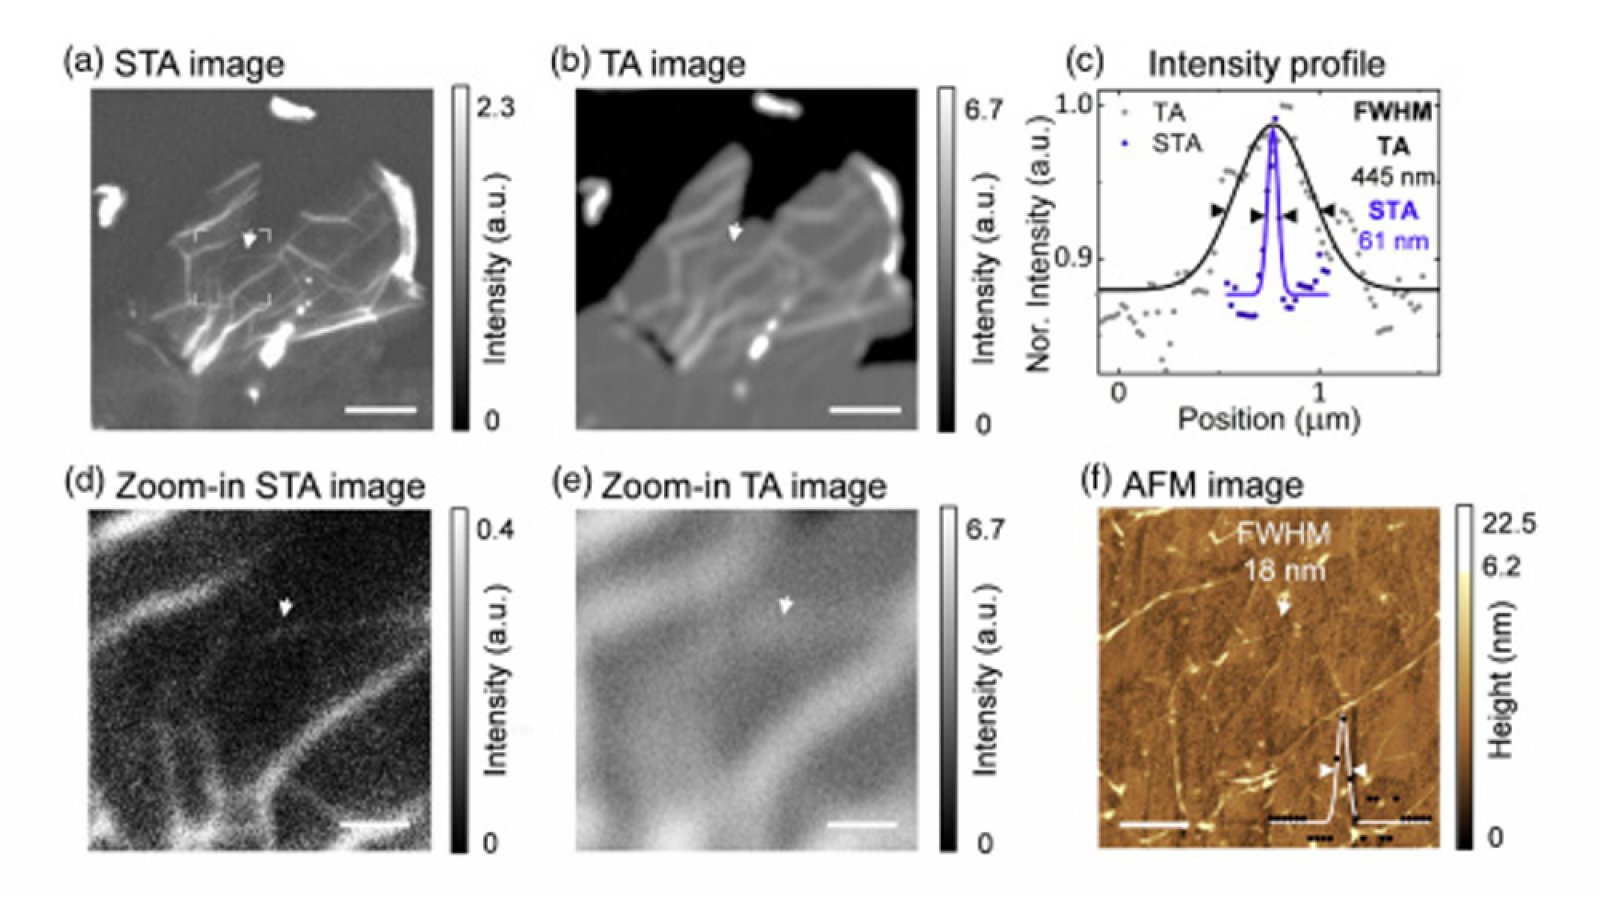 The proposed STA imaging method developed by Wei Bao's team can significantly improve the spatial resolution in contrast to conventional TA microscopy.